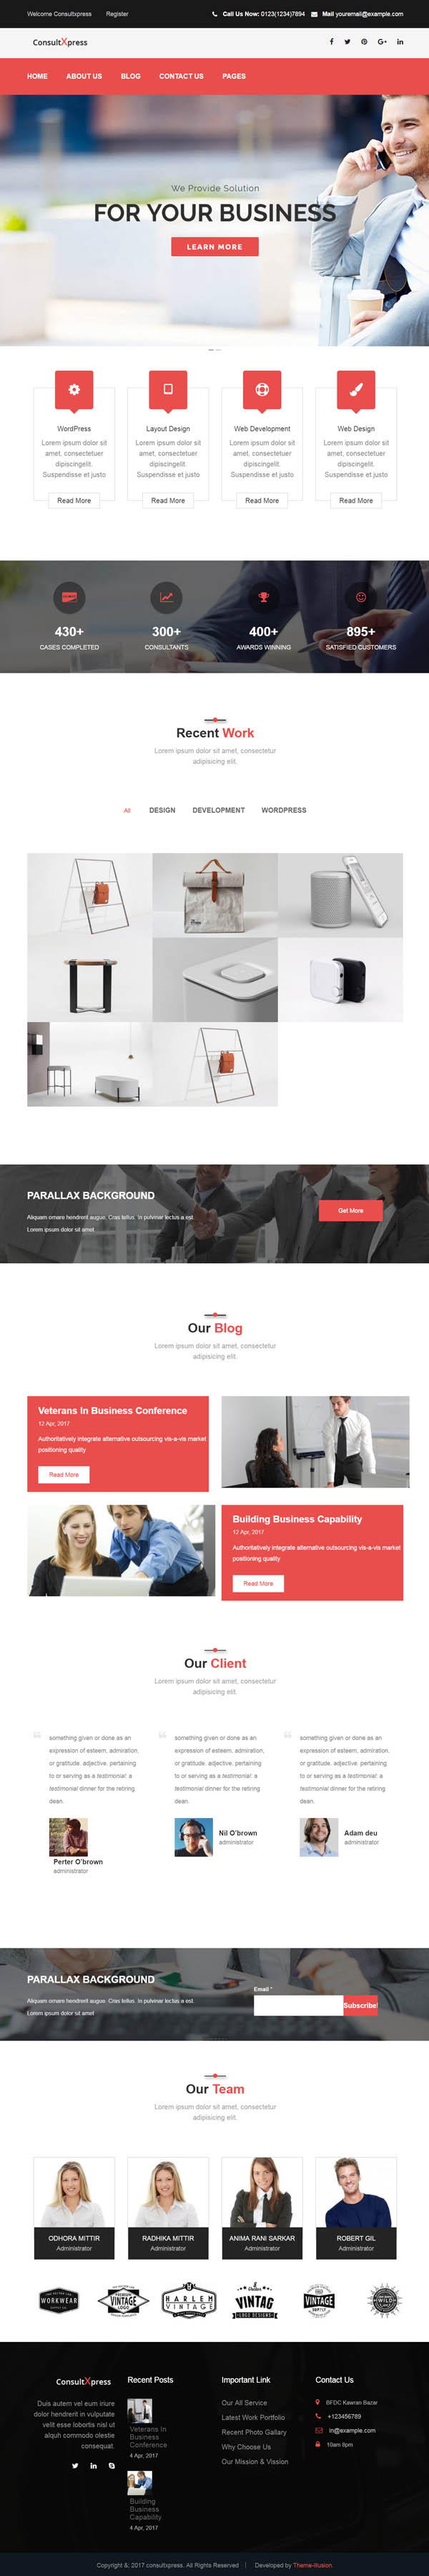 Consultxpress - Multipurpose Business WordPress Theme